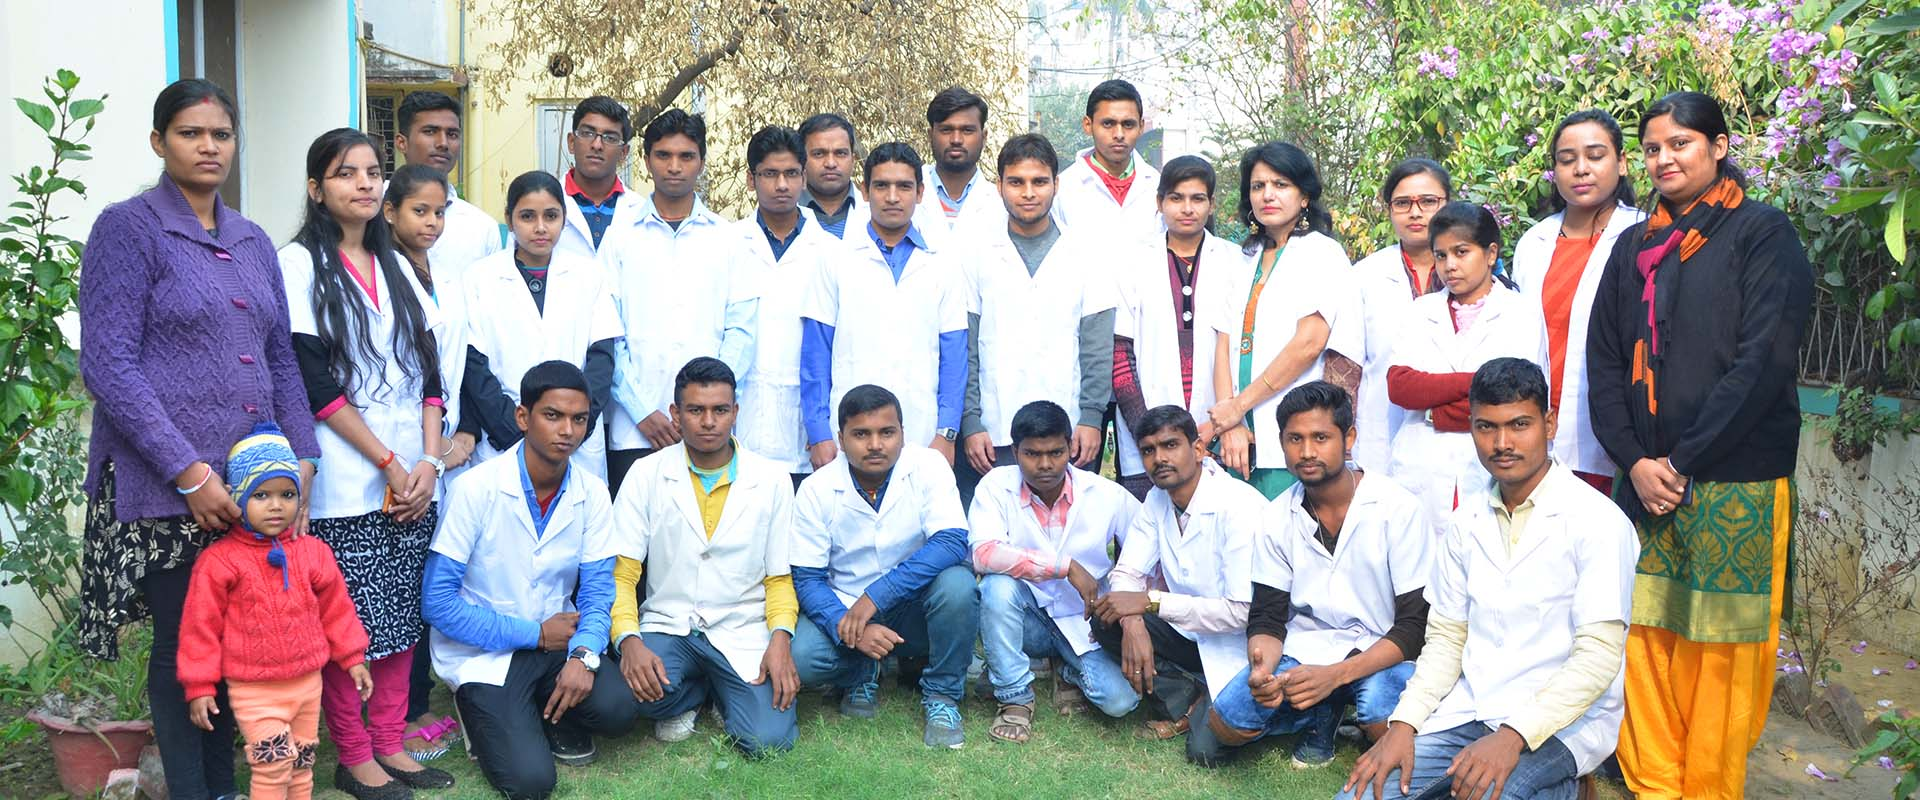 become a paramedic in patna,  how to become a paramedic in patna, lab technician in patna,  best lab technicians in patna